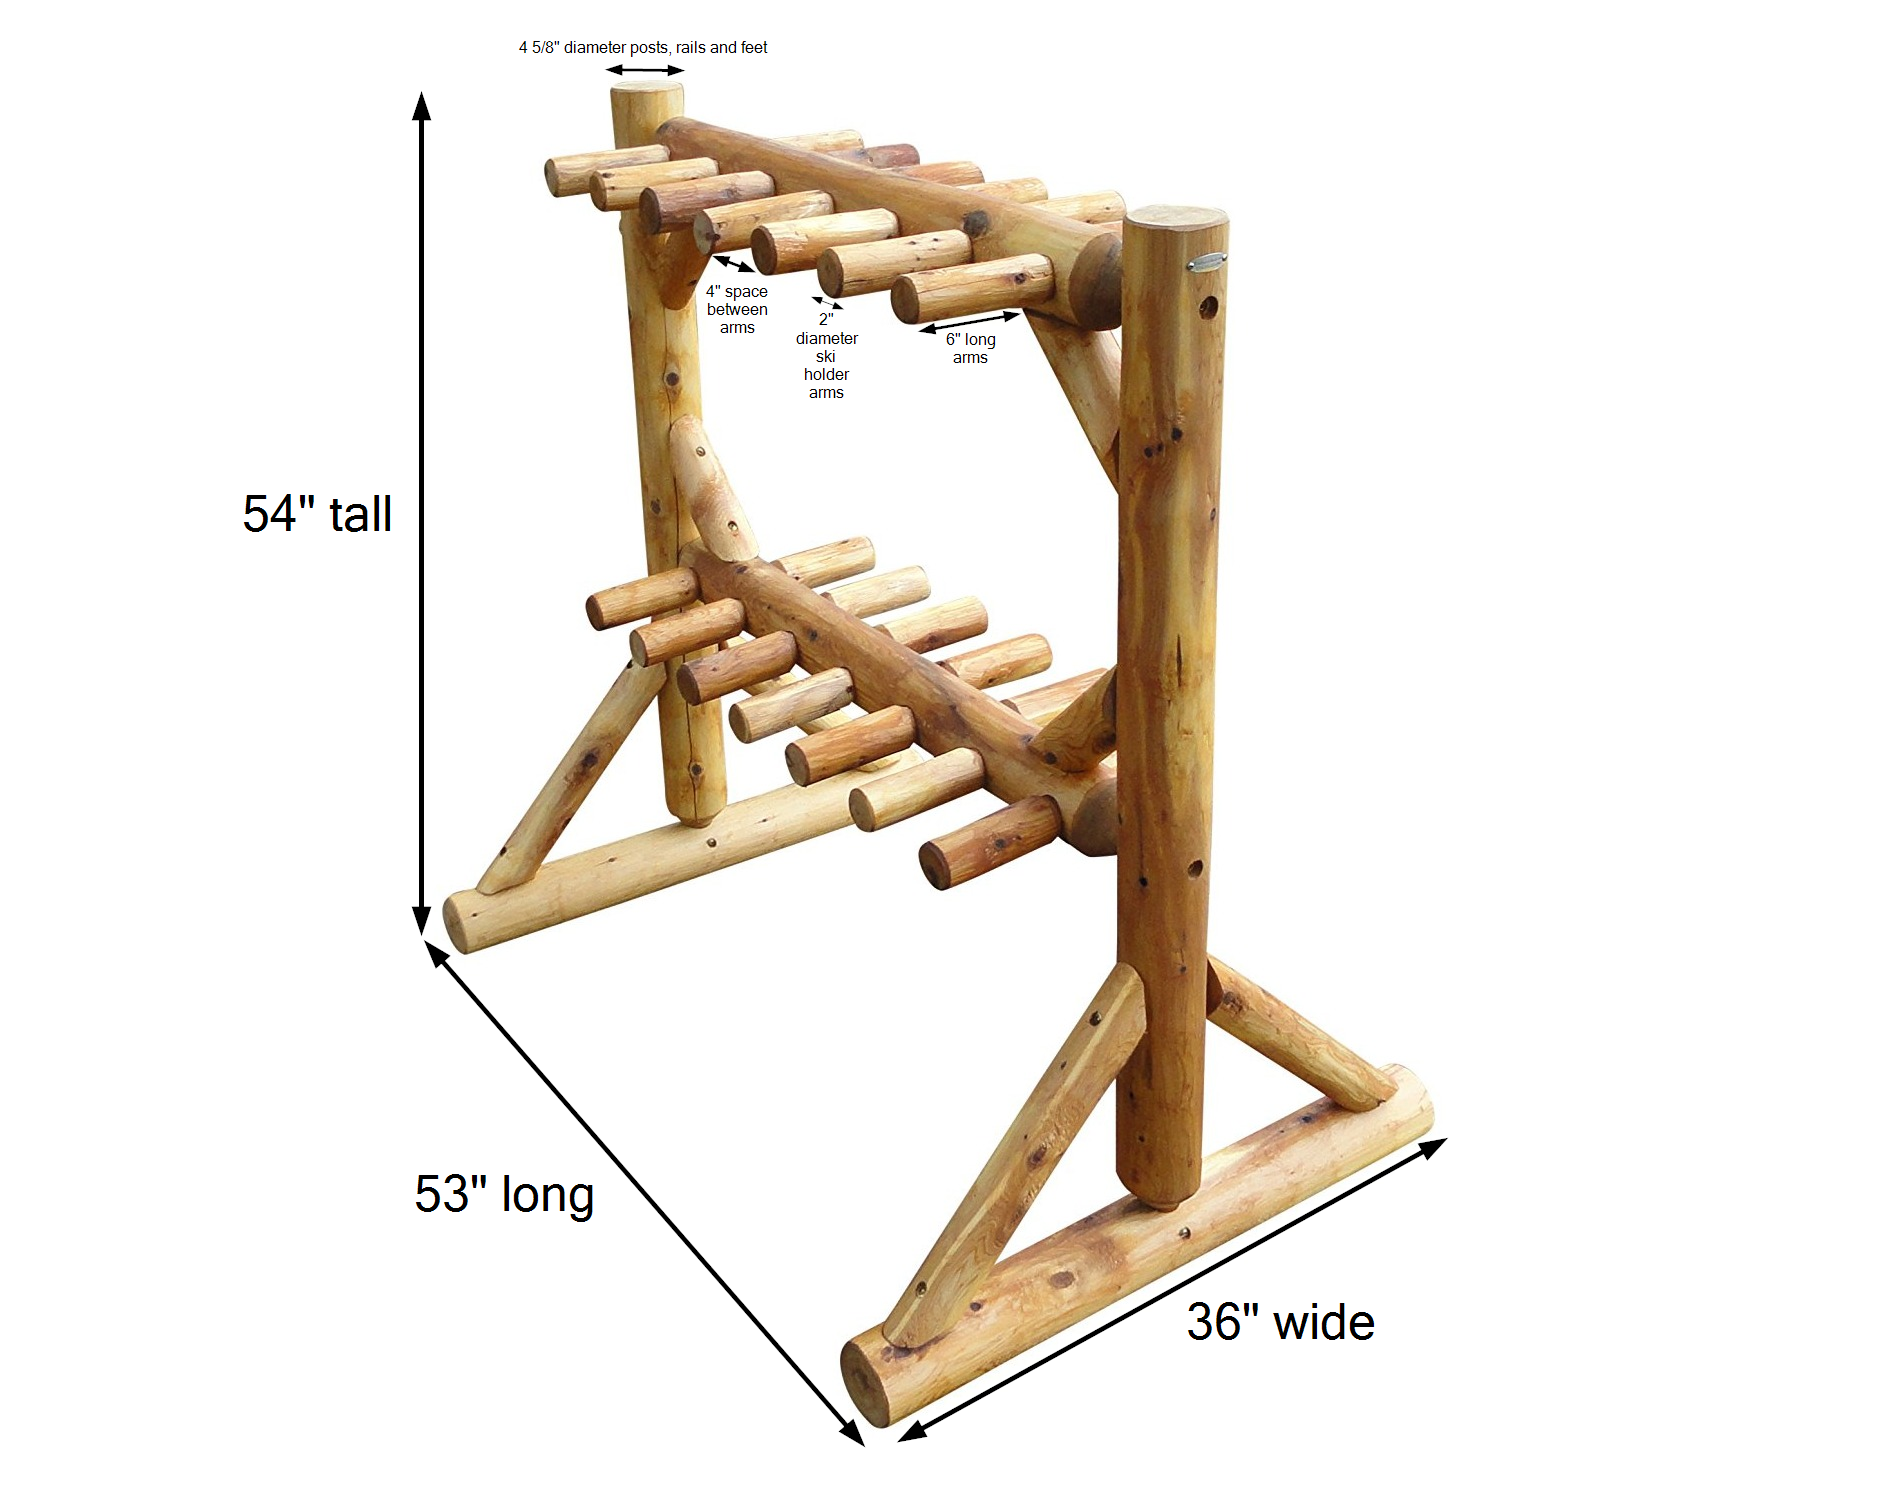 log-ski-rack-dimensions.jpeg